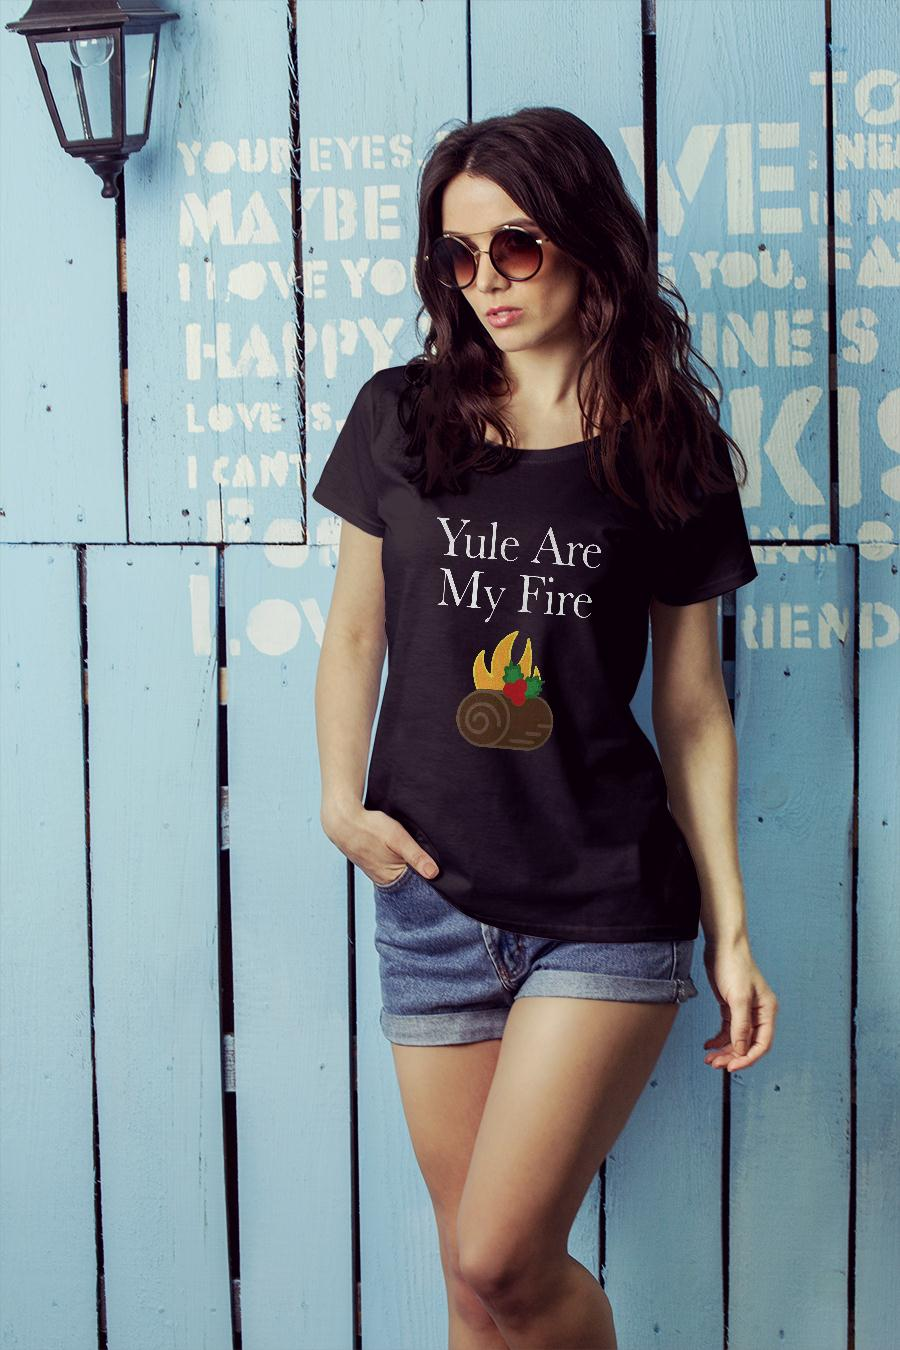 Yule are my fire ShirtVintage Tats and Cats Men TShirt ladies tee official